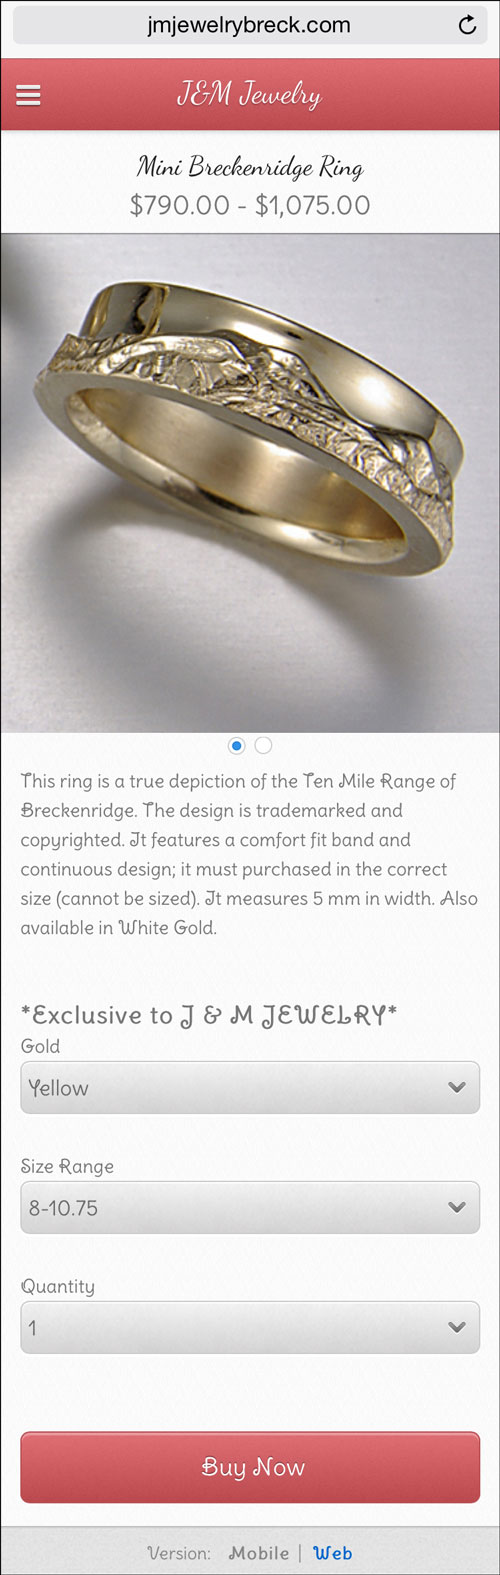 J&M Jewelry Mobile Website Review 1275-breckenridge-ring-detail-9